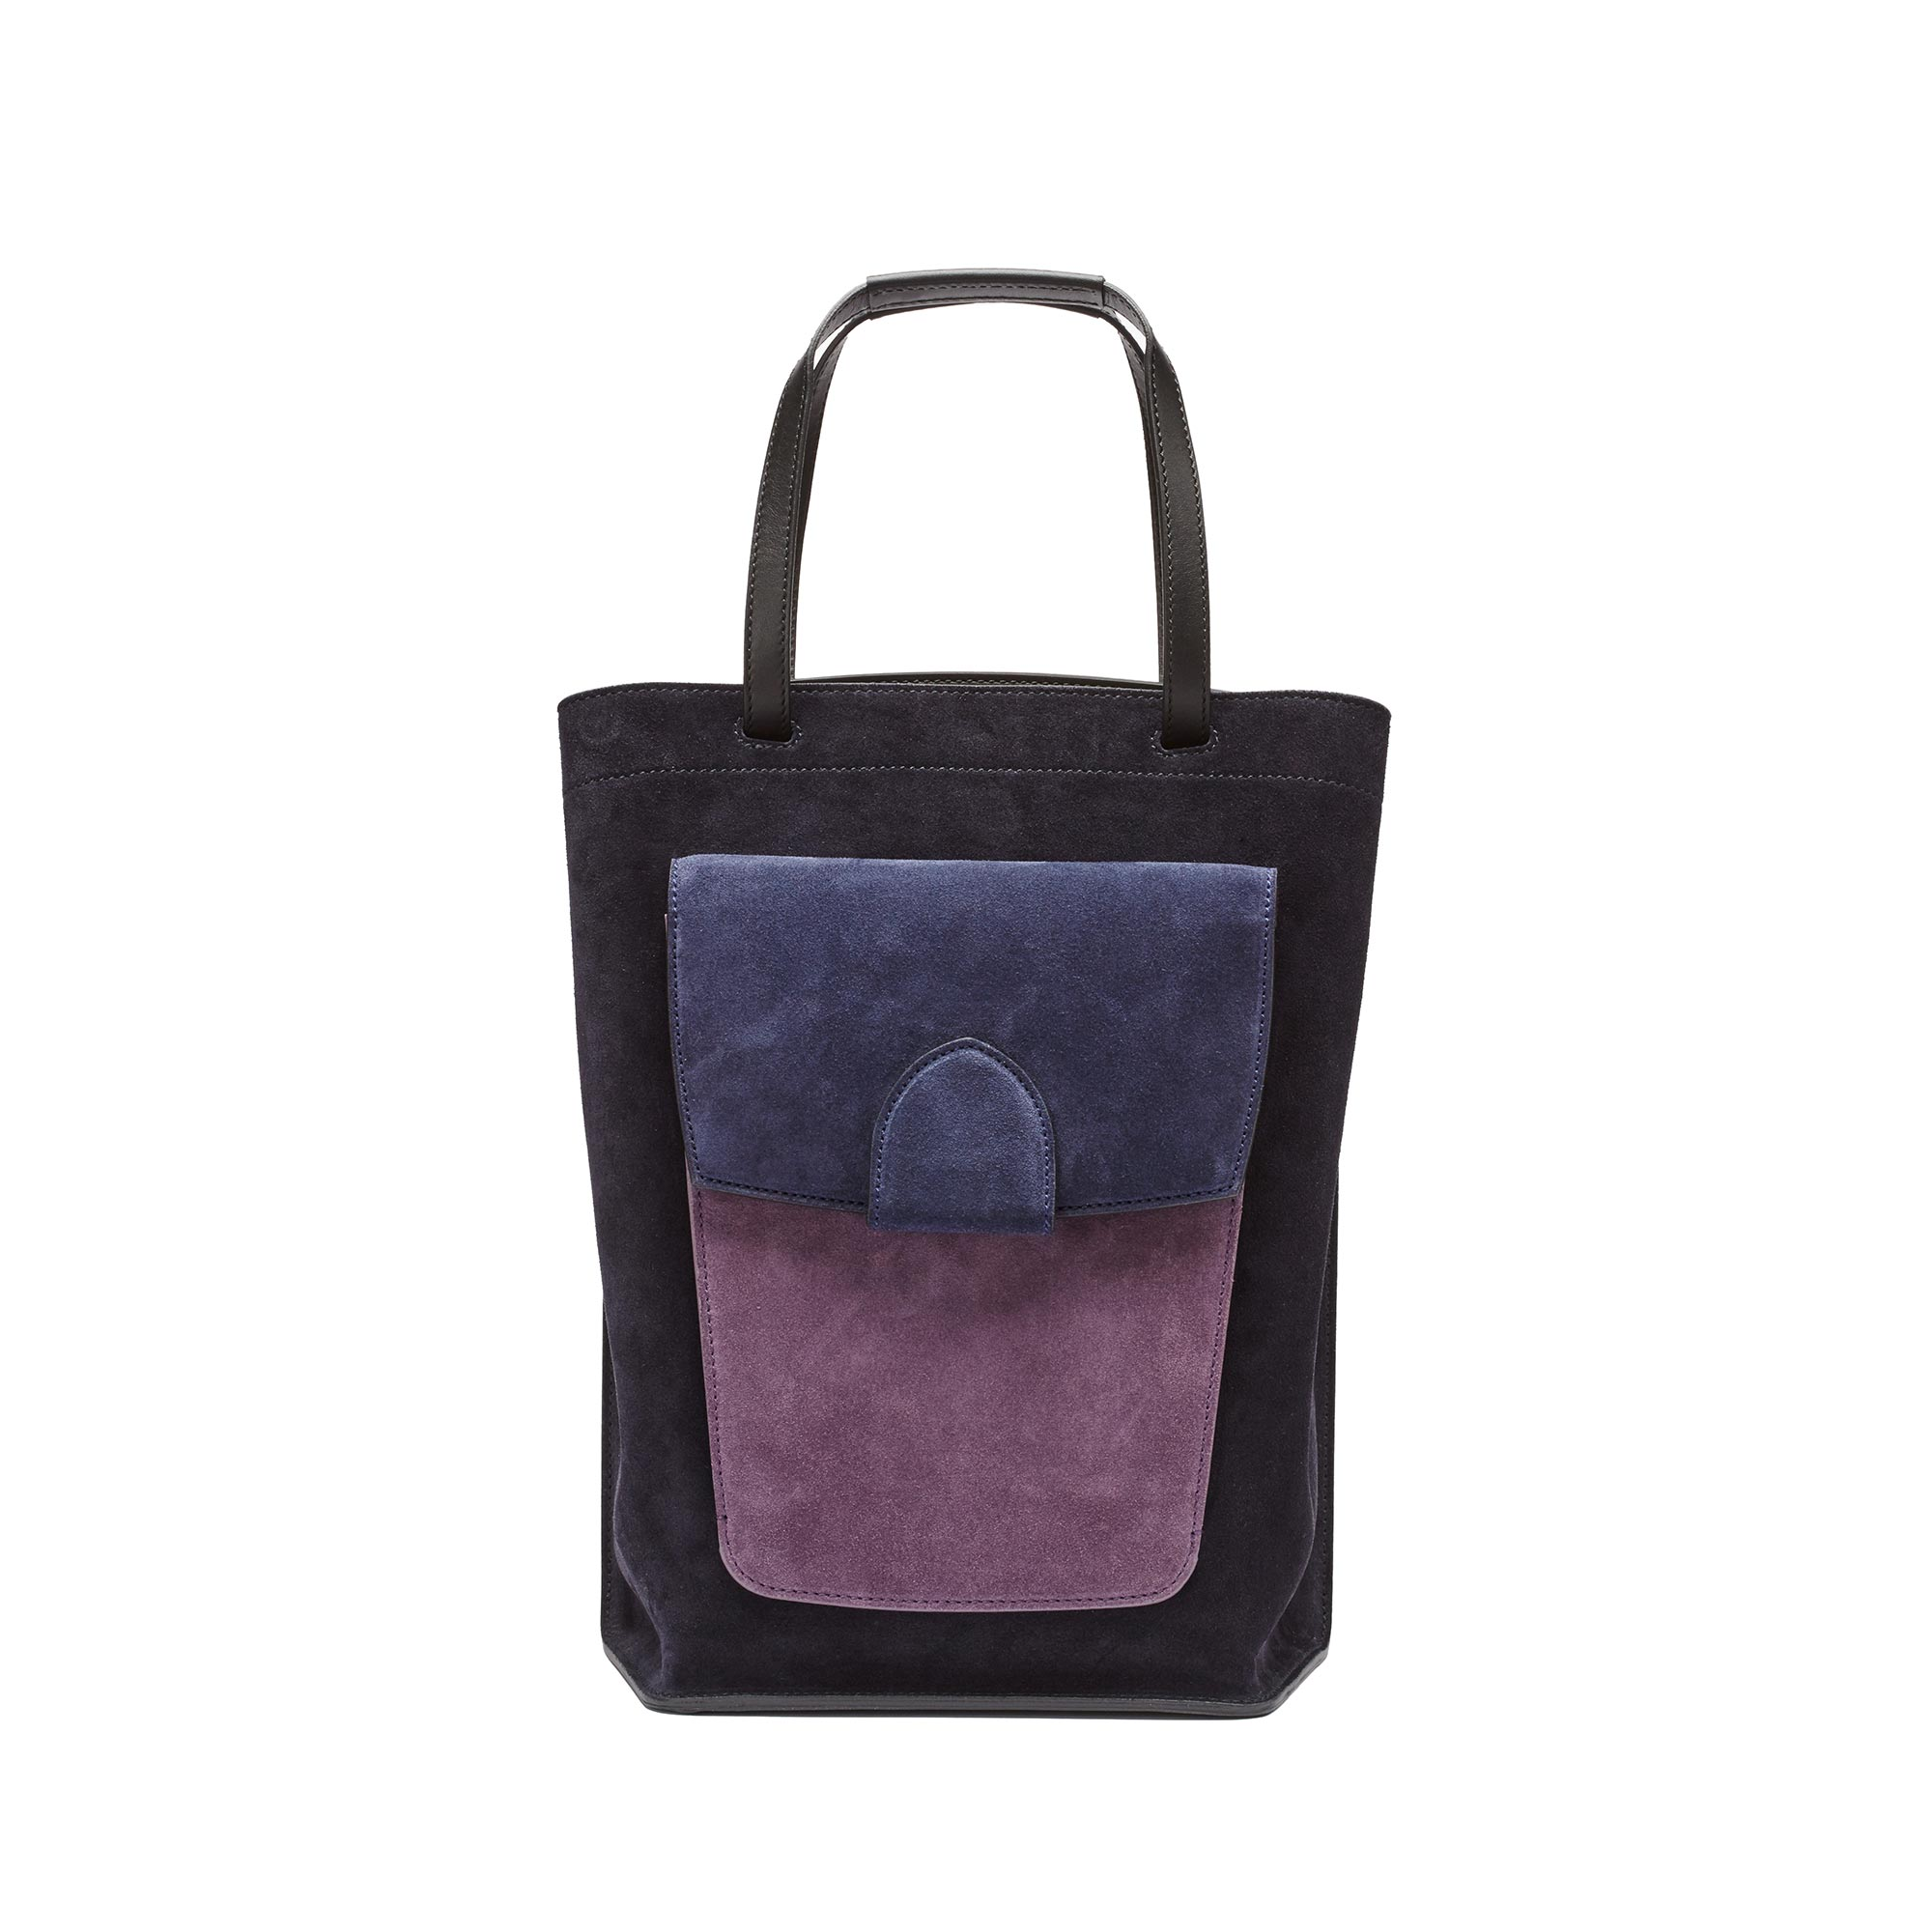 Arizona-black-navy-purple-suede-bag-Bertoni-1949